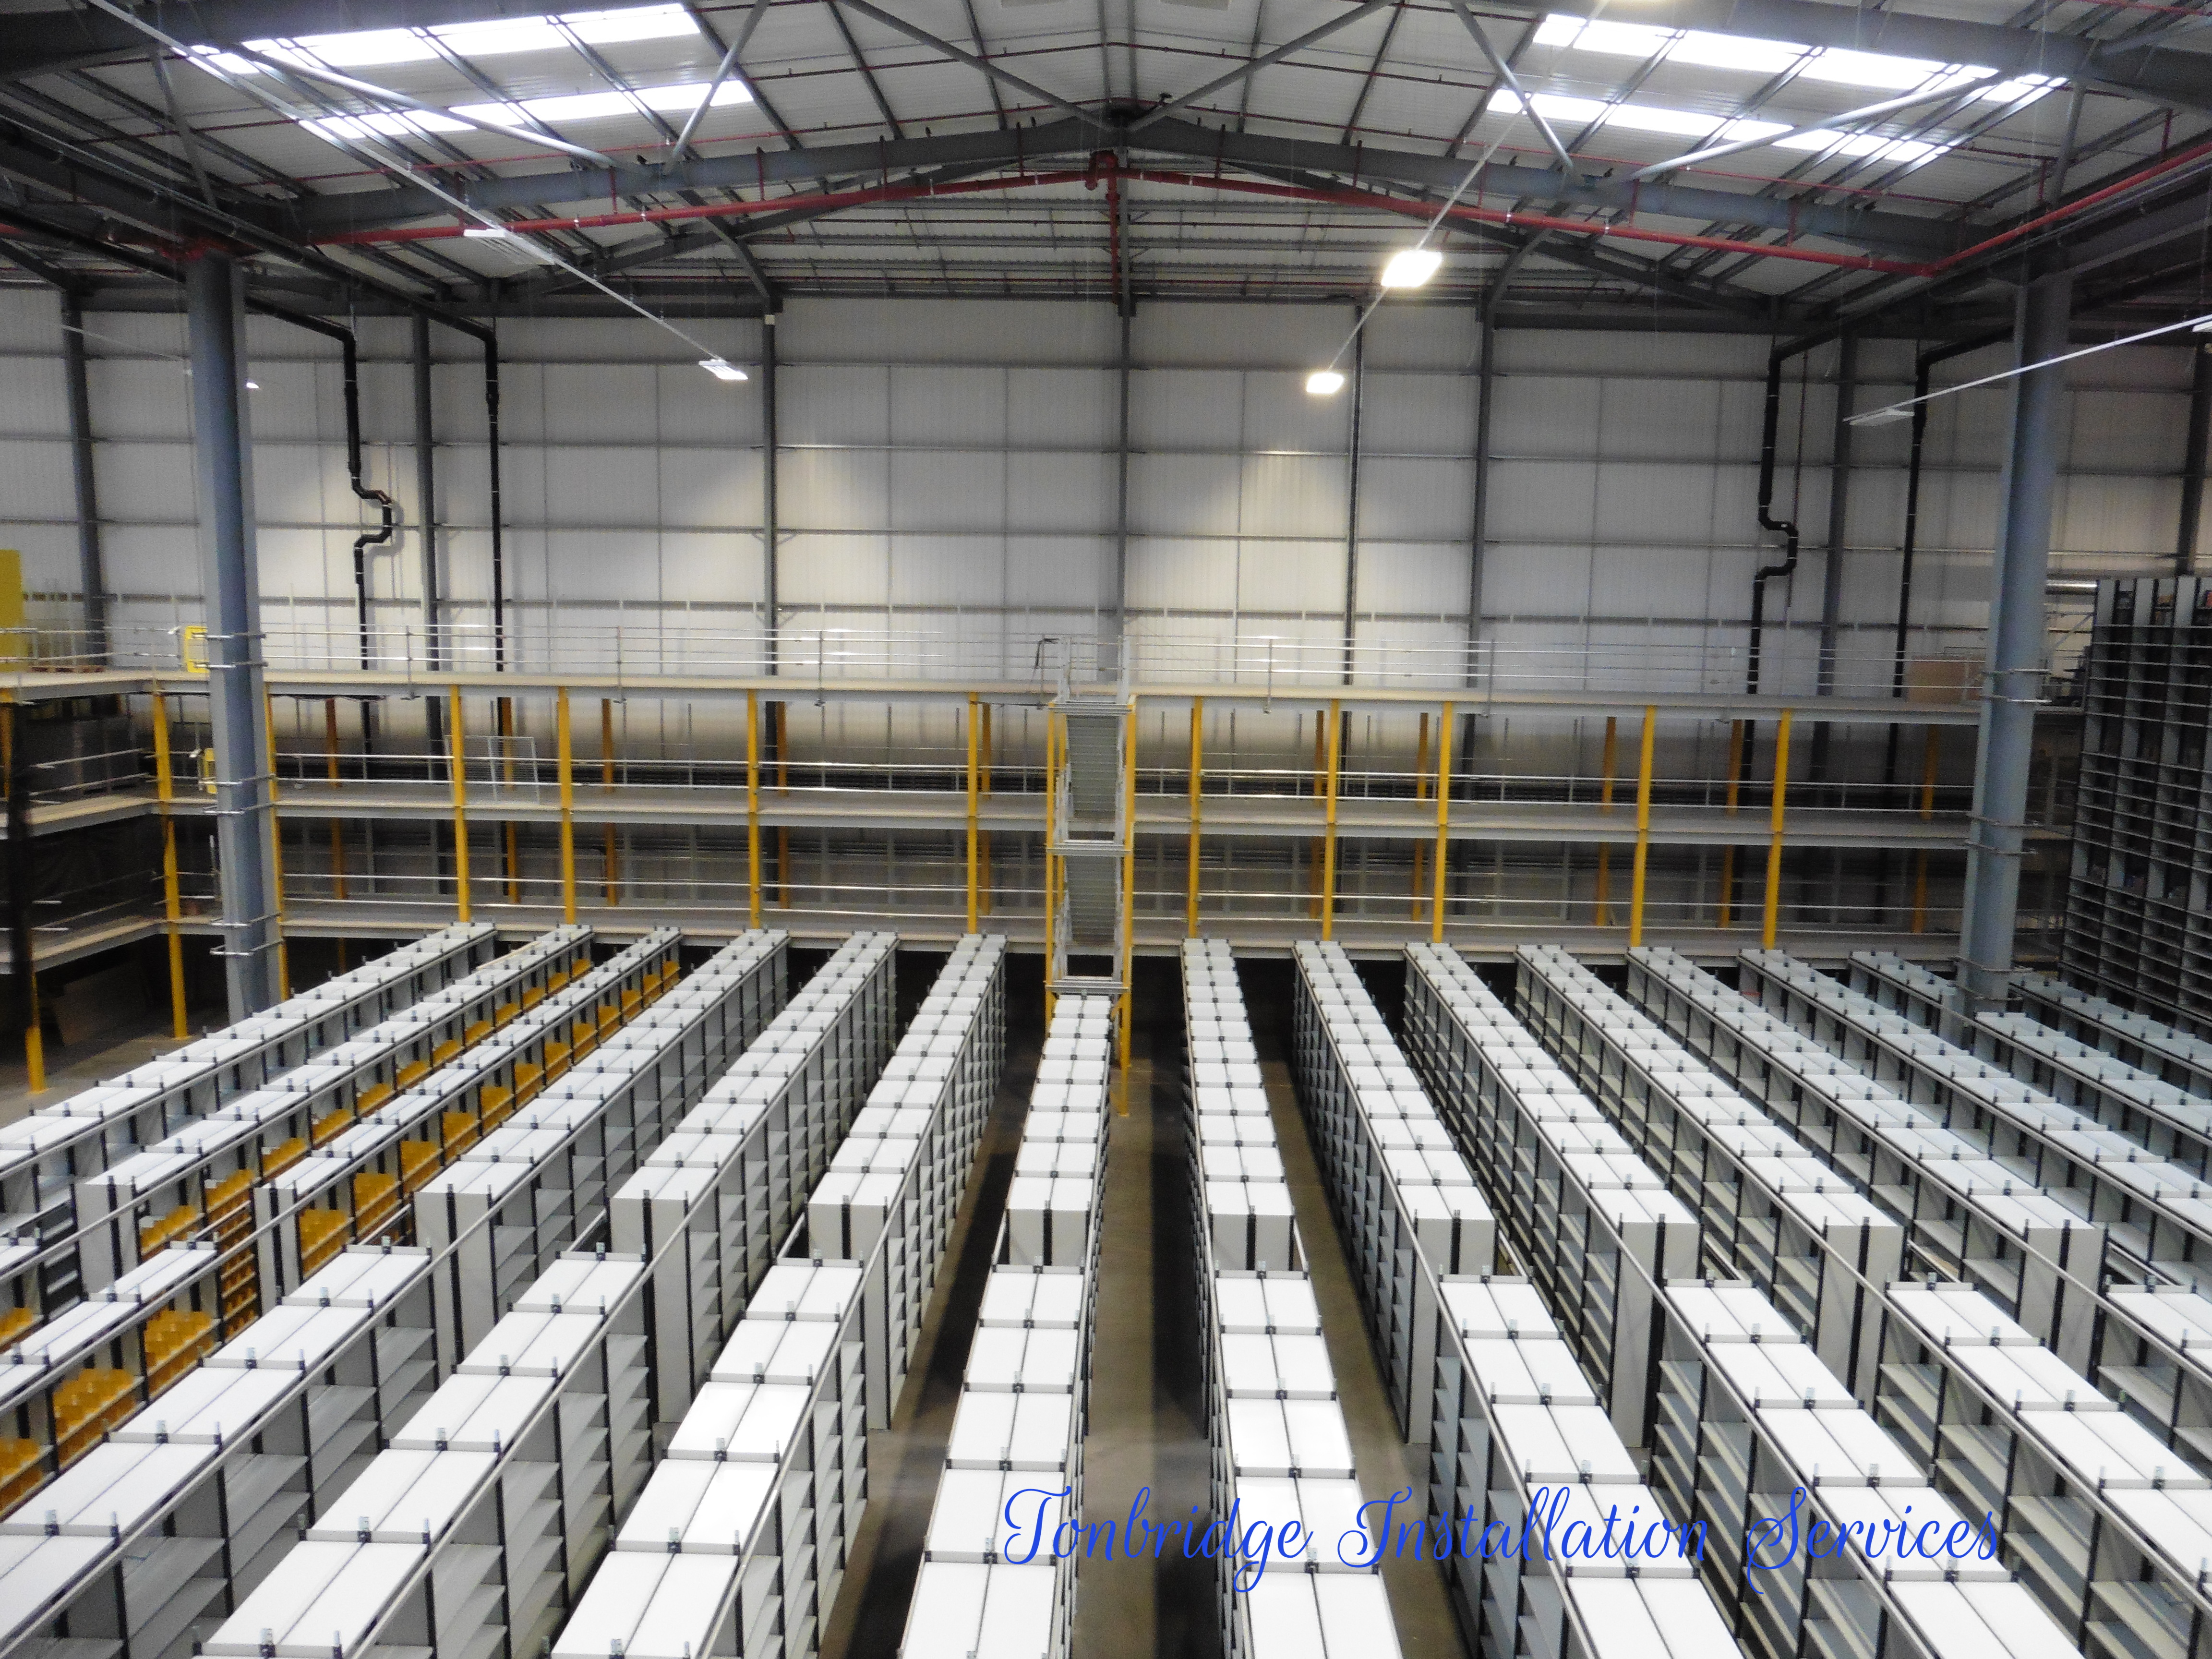 Mezzanine Floors Racking Installation Mezzanine Floor - Tonbridge Installation Services